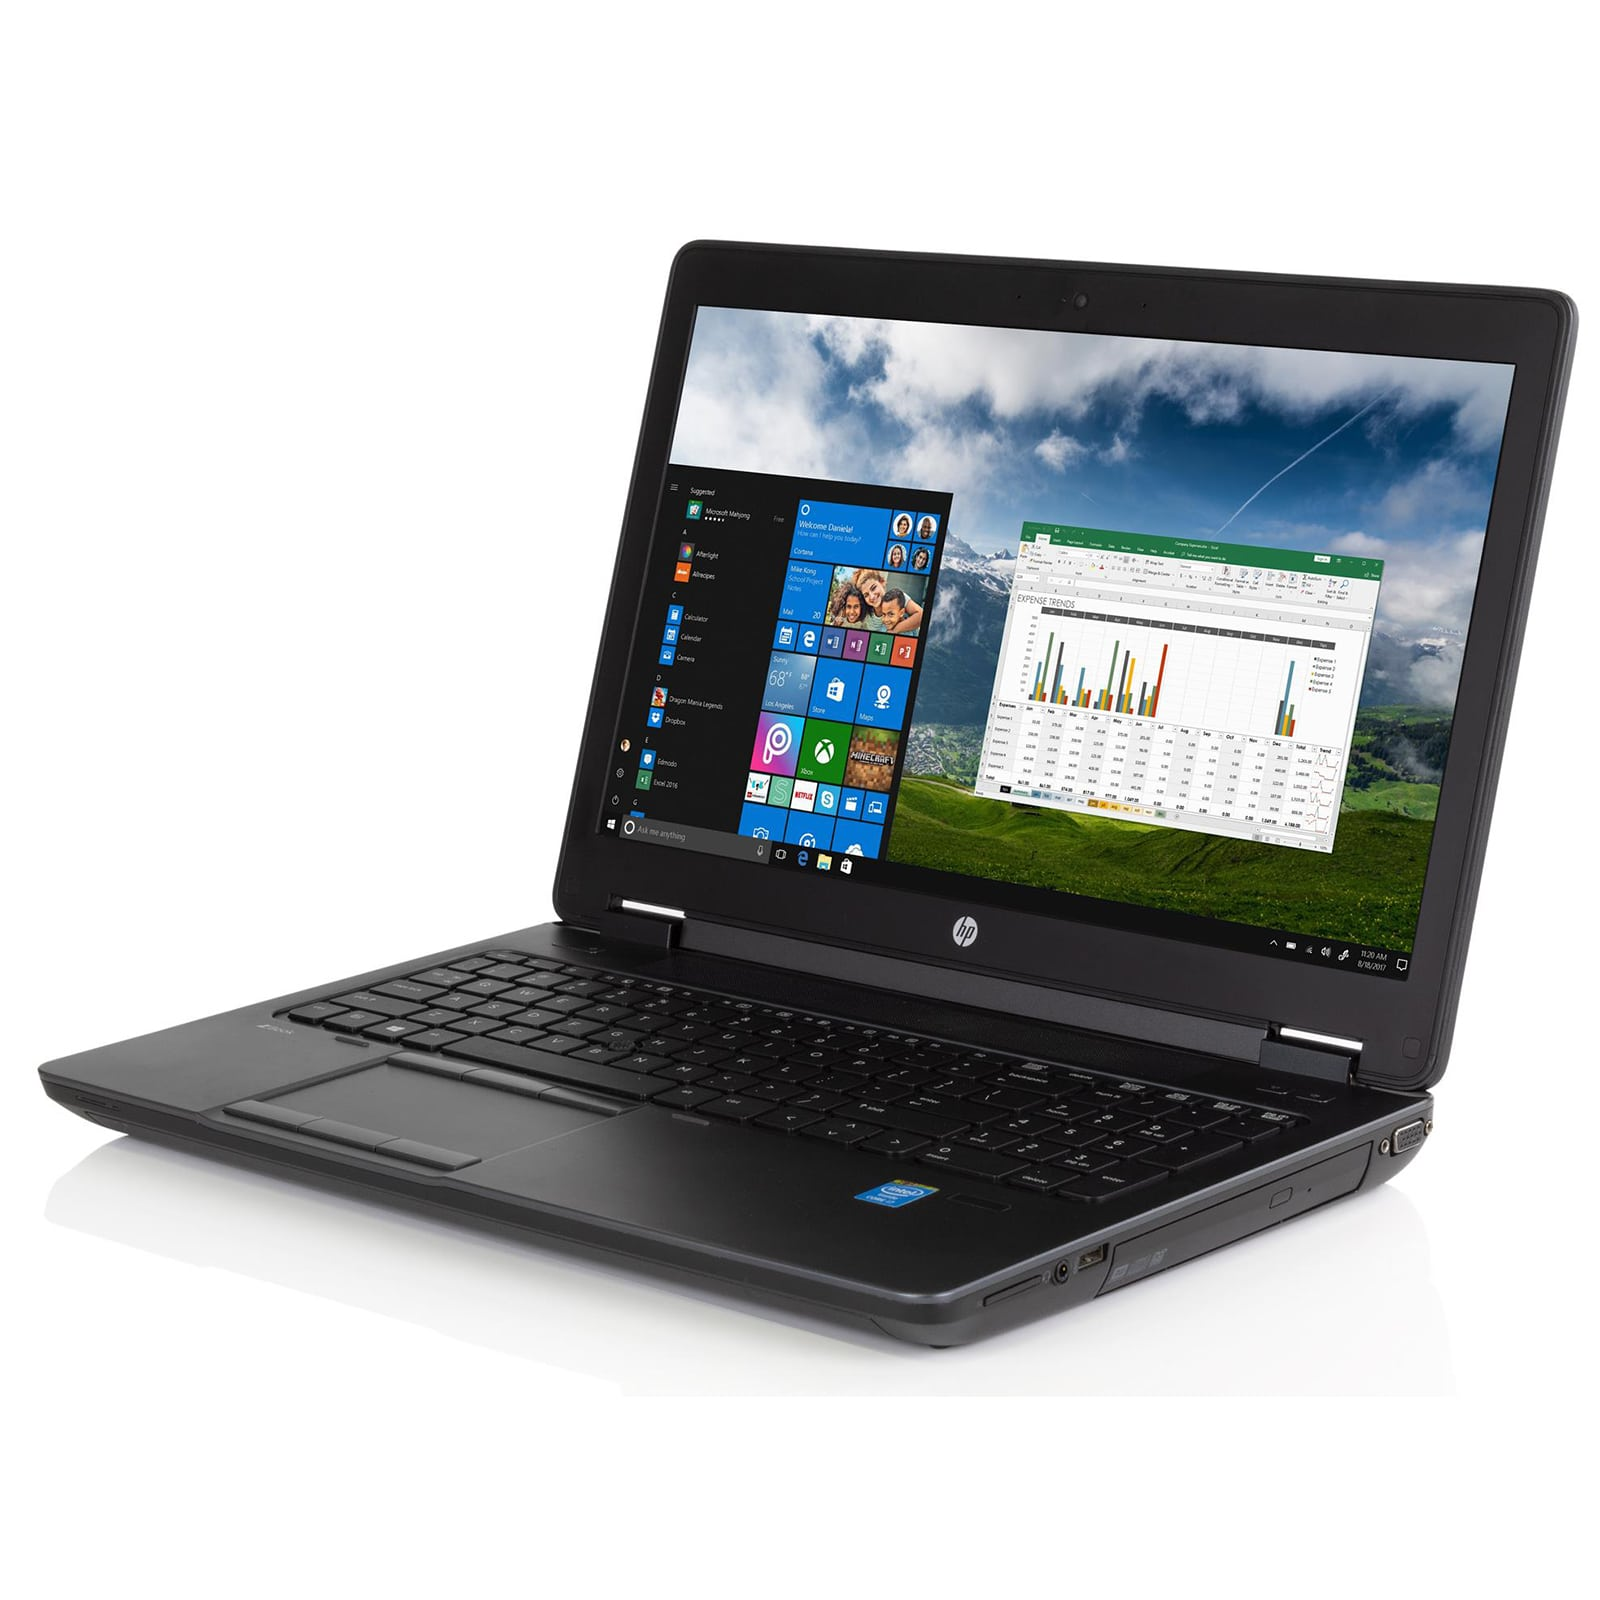 HP Zbook 15 G1 Core i7-4800QM, Ram 8GB, SSD 256GB, 15.6 inch Full HD, Quadro 2GB